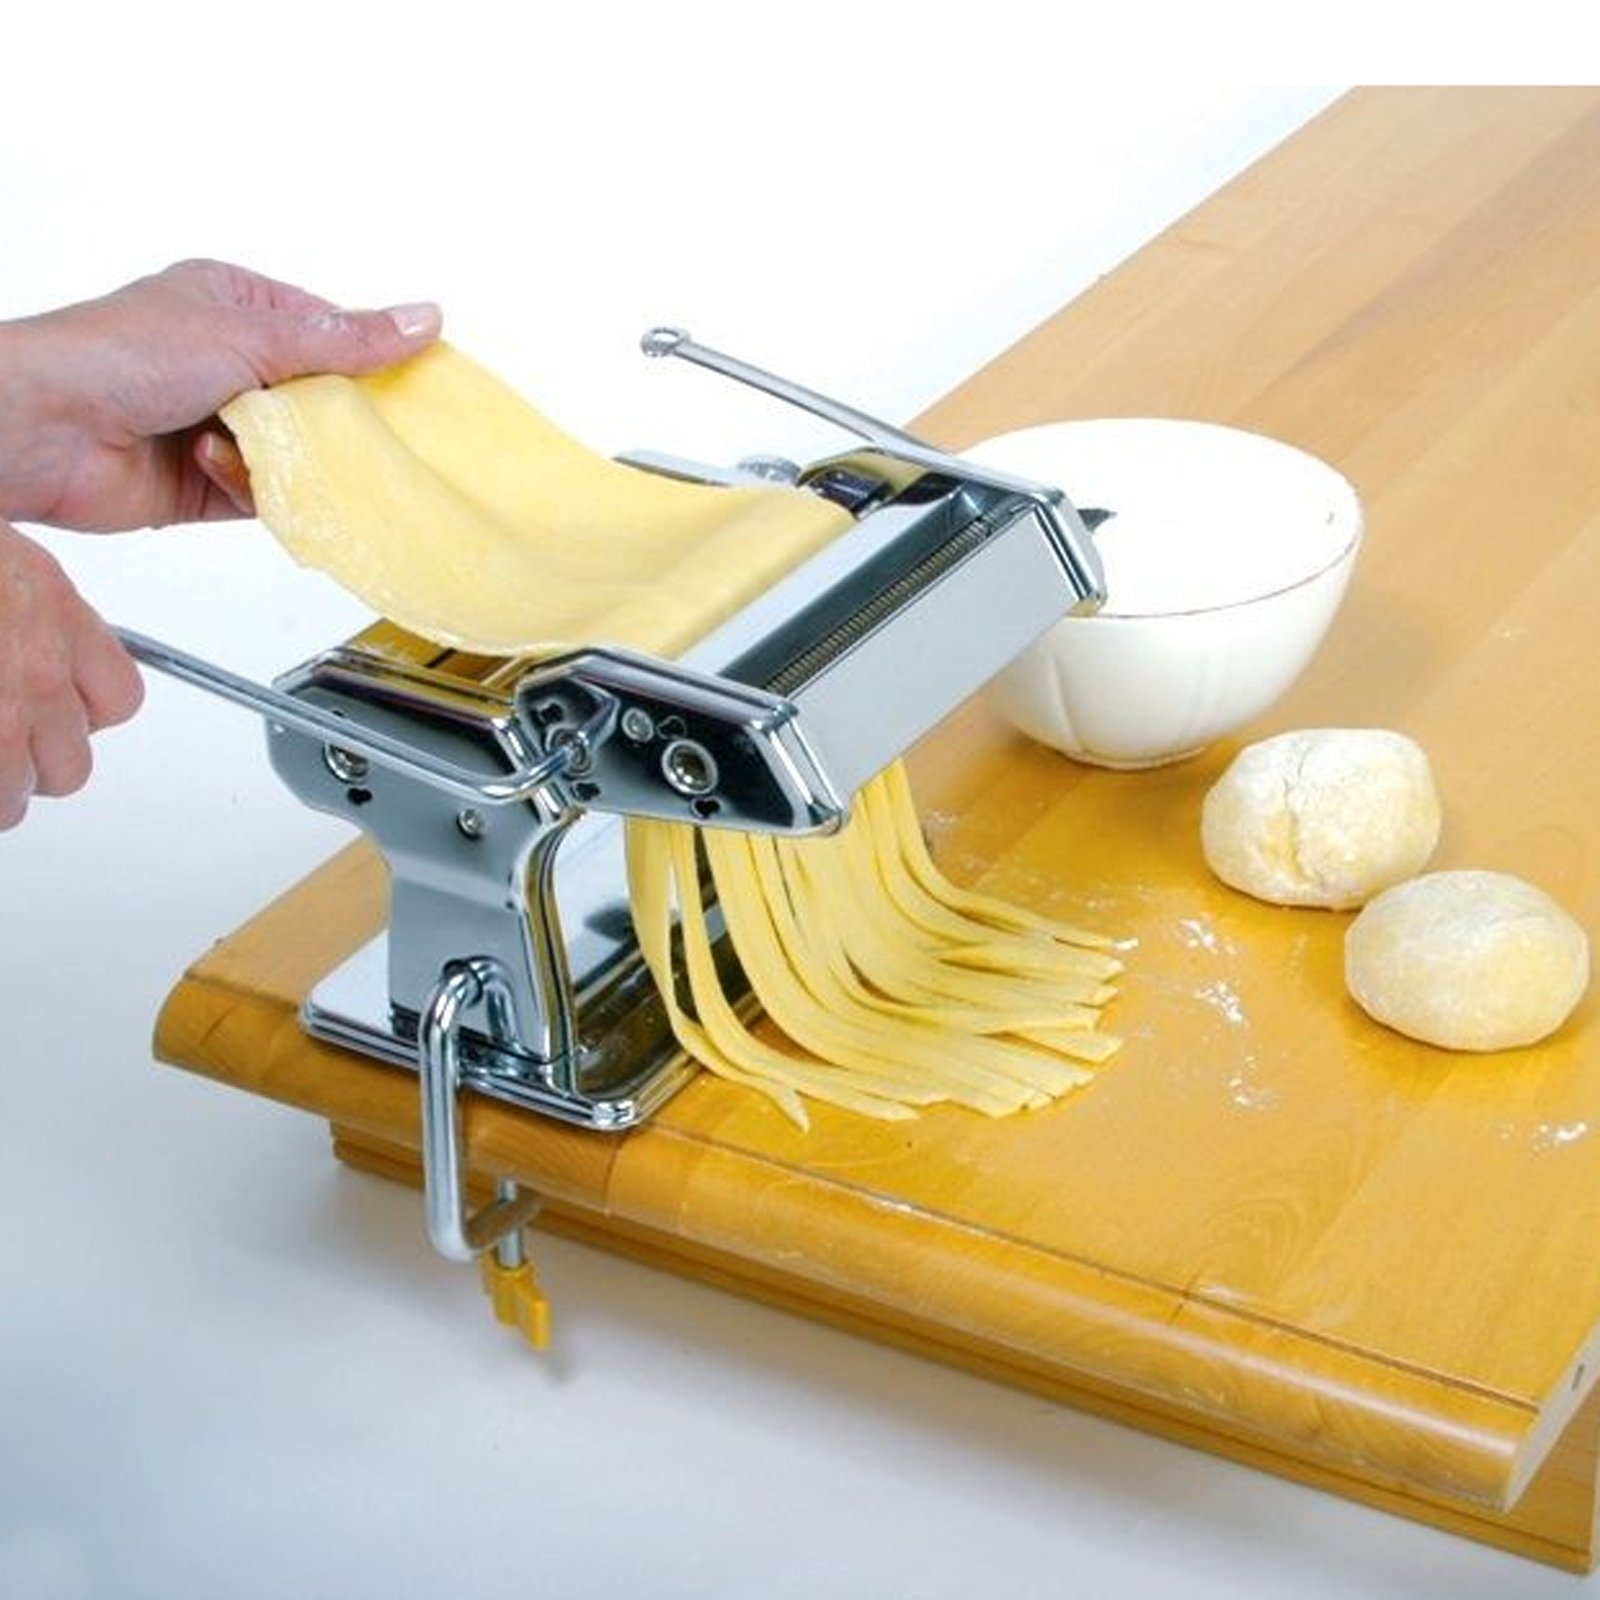 Tomasar Pasta Maker 3 in 1 Stainless Steel Pasta Machine Roller Cutter for Spaghetti Lasagne Tagliatelle Noodle with 2 Blades and Table Top Clamp (Pasta Maker)